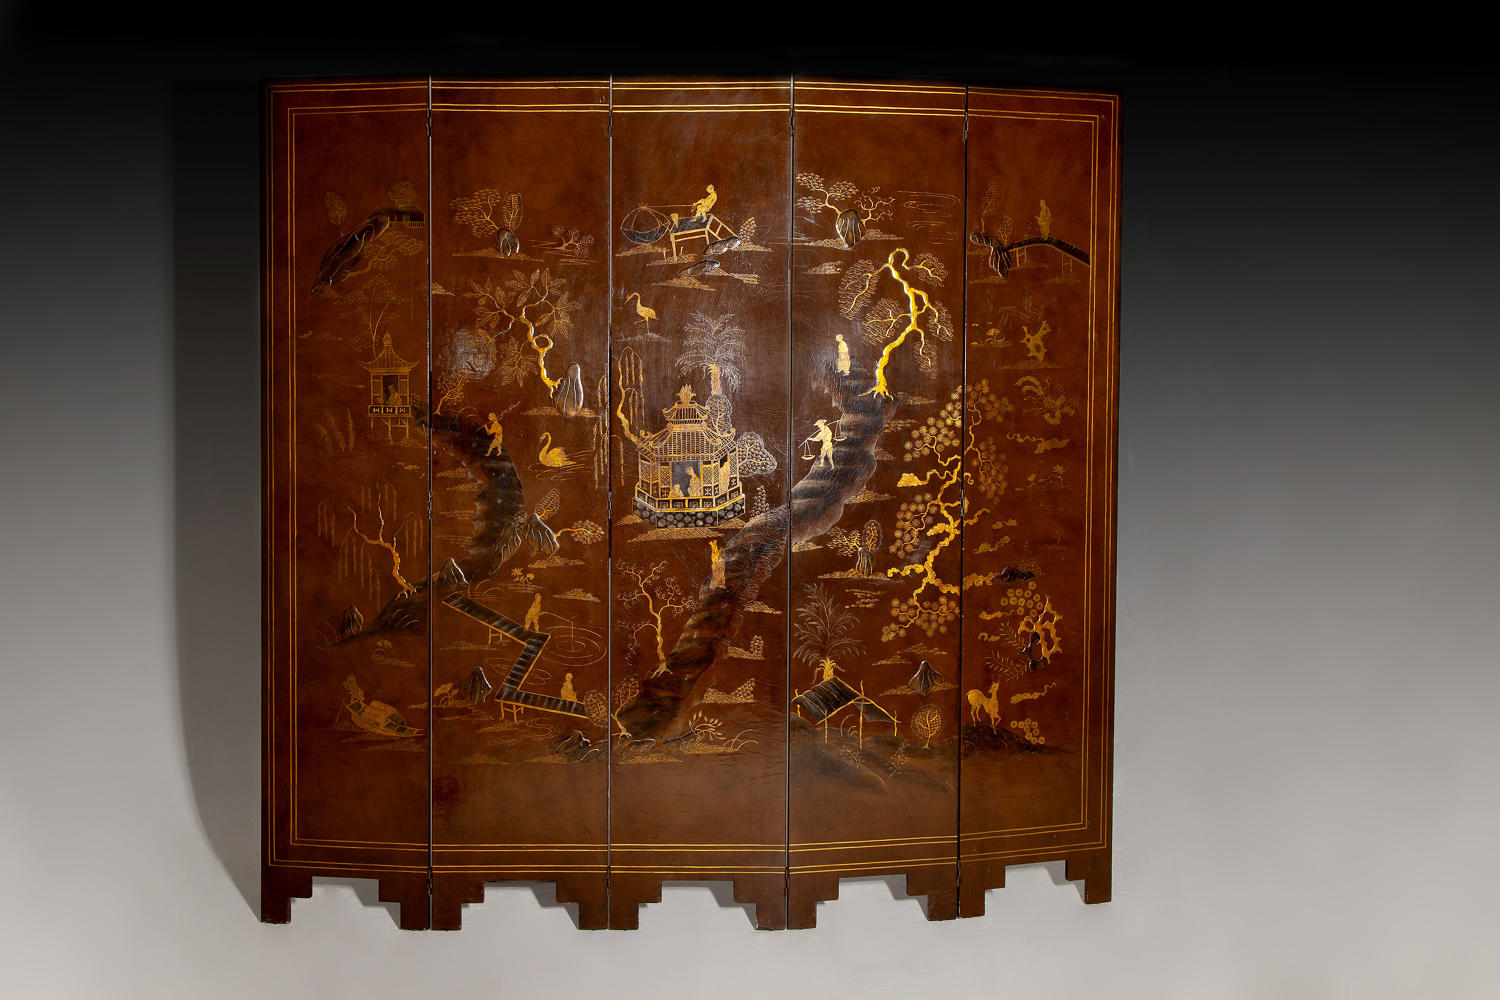 An early 20th century lacquer screen by Maison Jansen